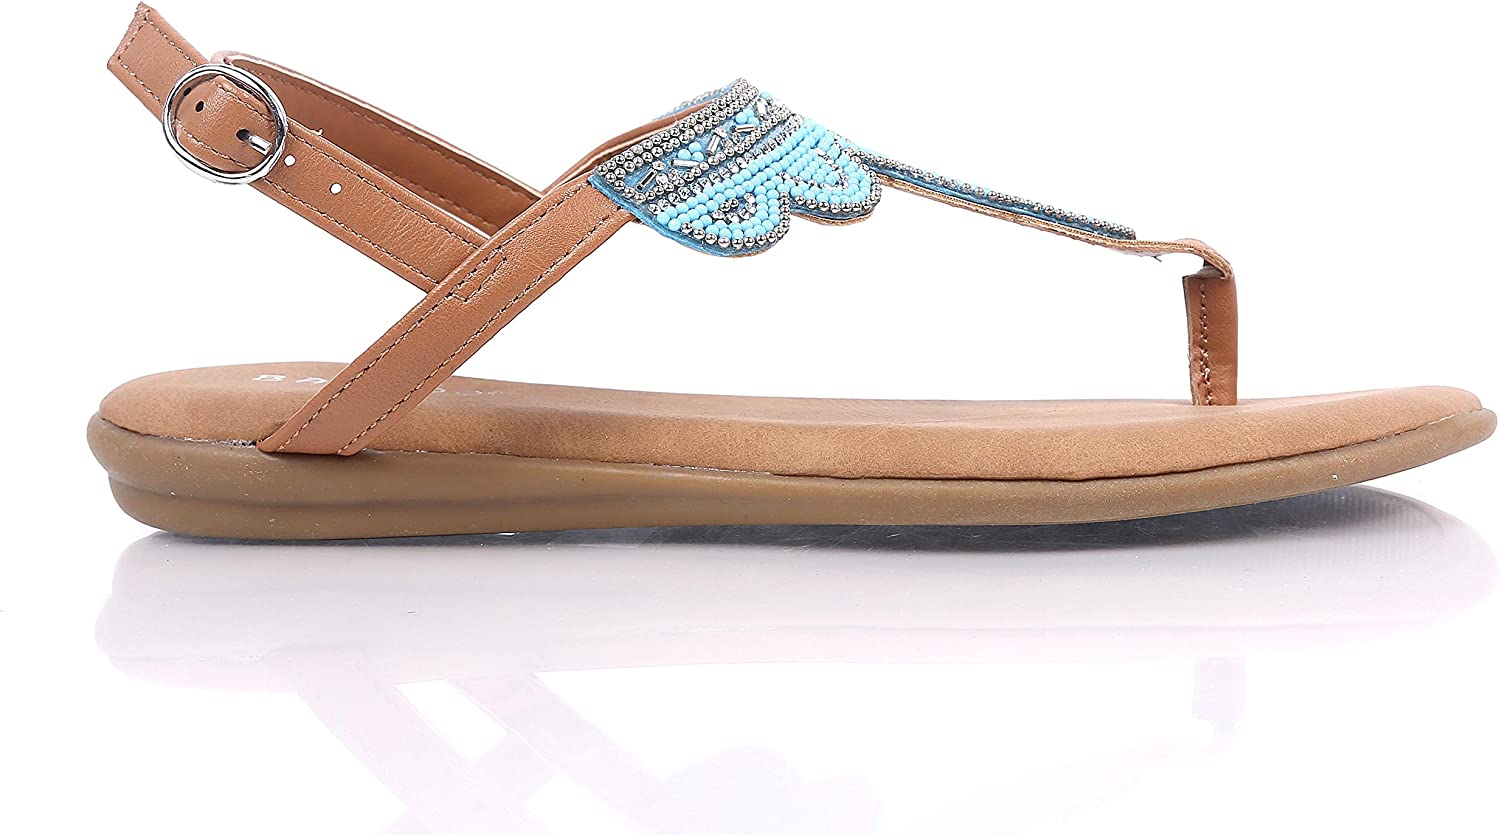 Bamboo Womens Thong T-Strap Flat Sandals Slip-on Slingback Buckle Closure Jewells Beaded Embroidery shoes